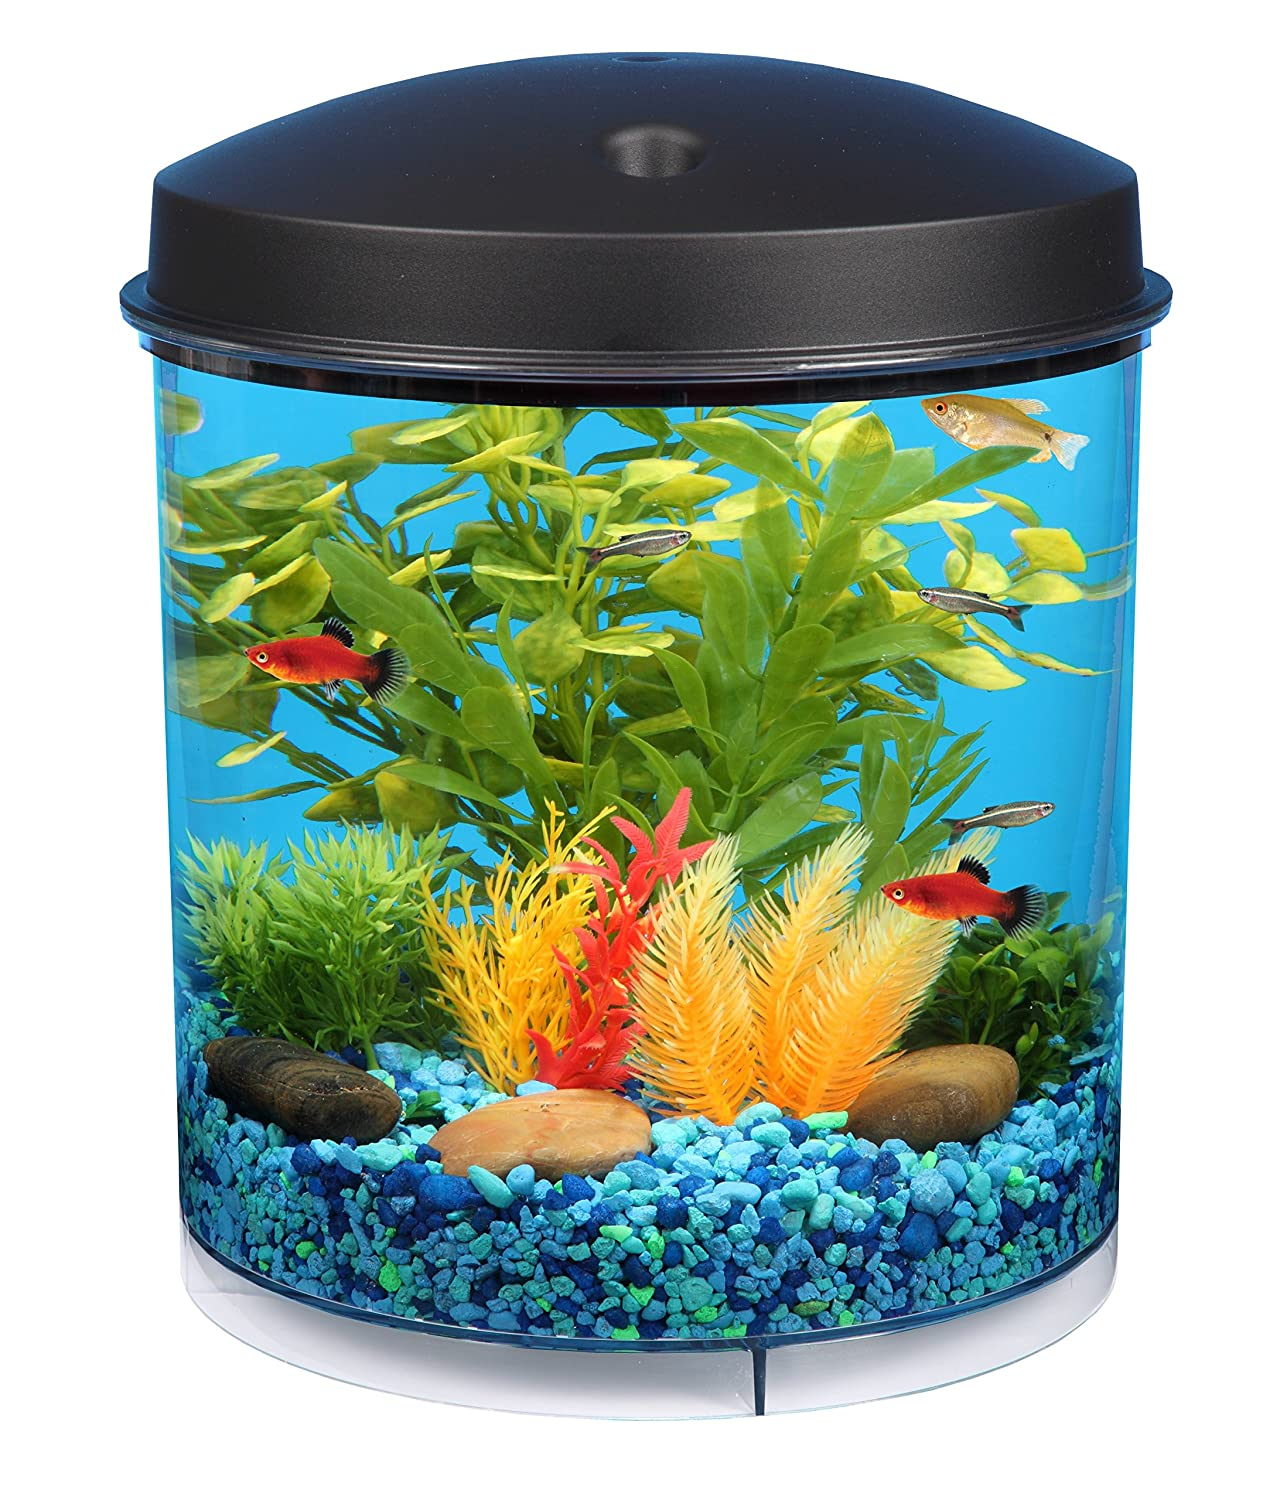 Freshwater Aquarium Fish Under 1 Inch - Api aquaview 360 aquarium kit with led lighting and internal